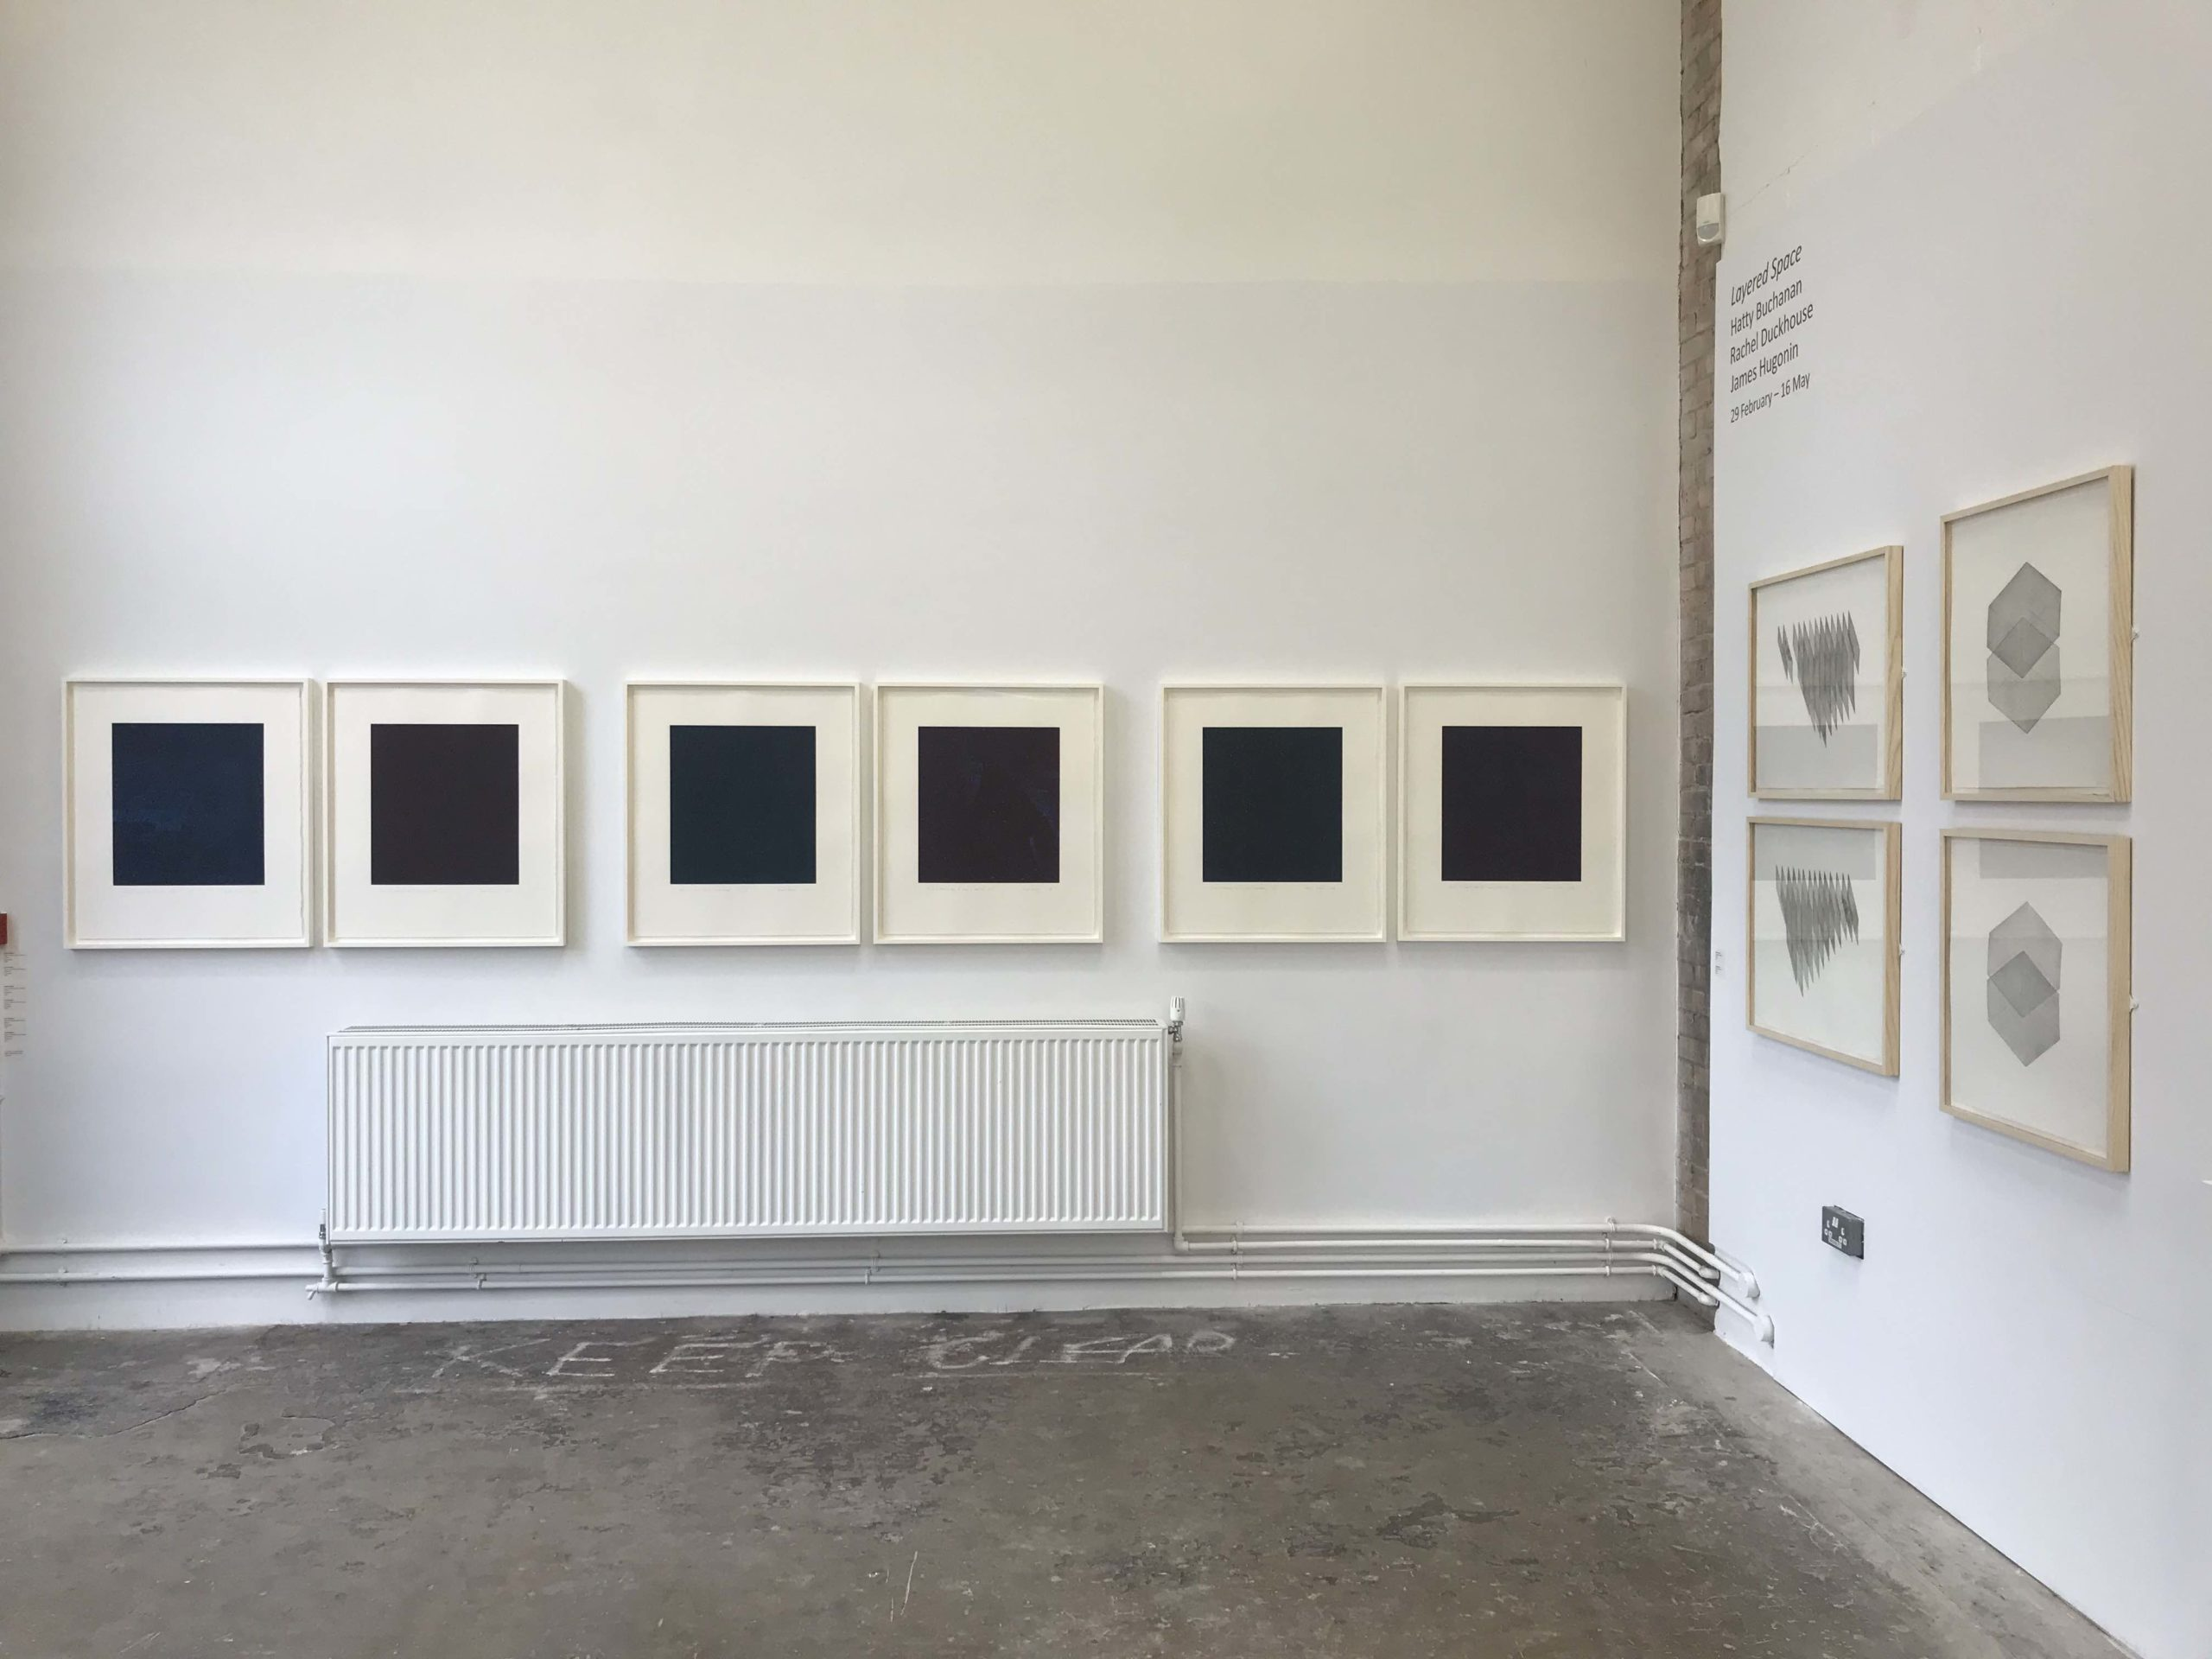 Curating the East Midlands: Yasmin Canvin